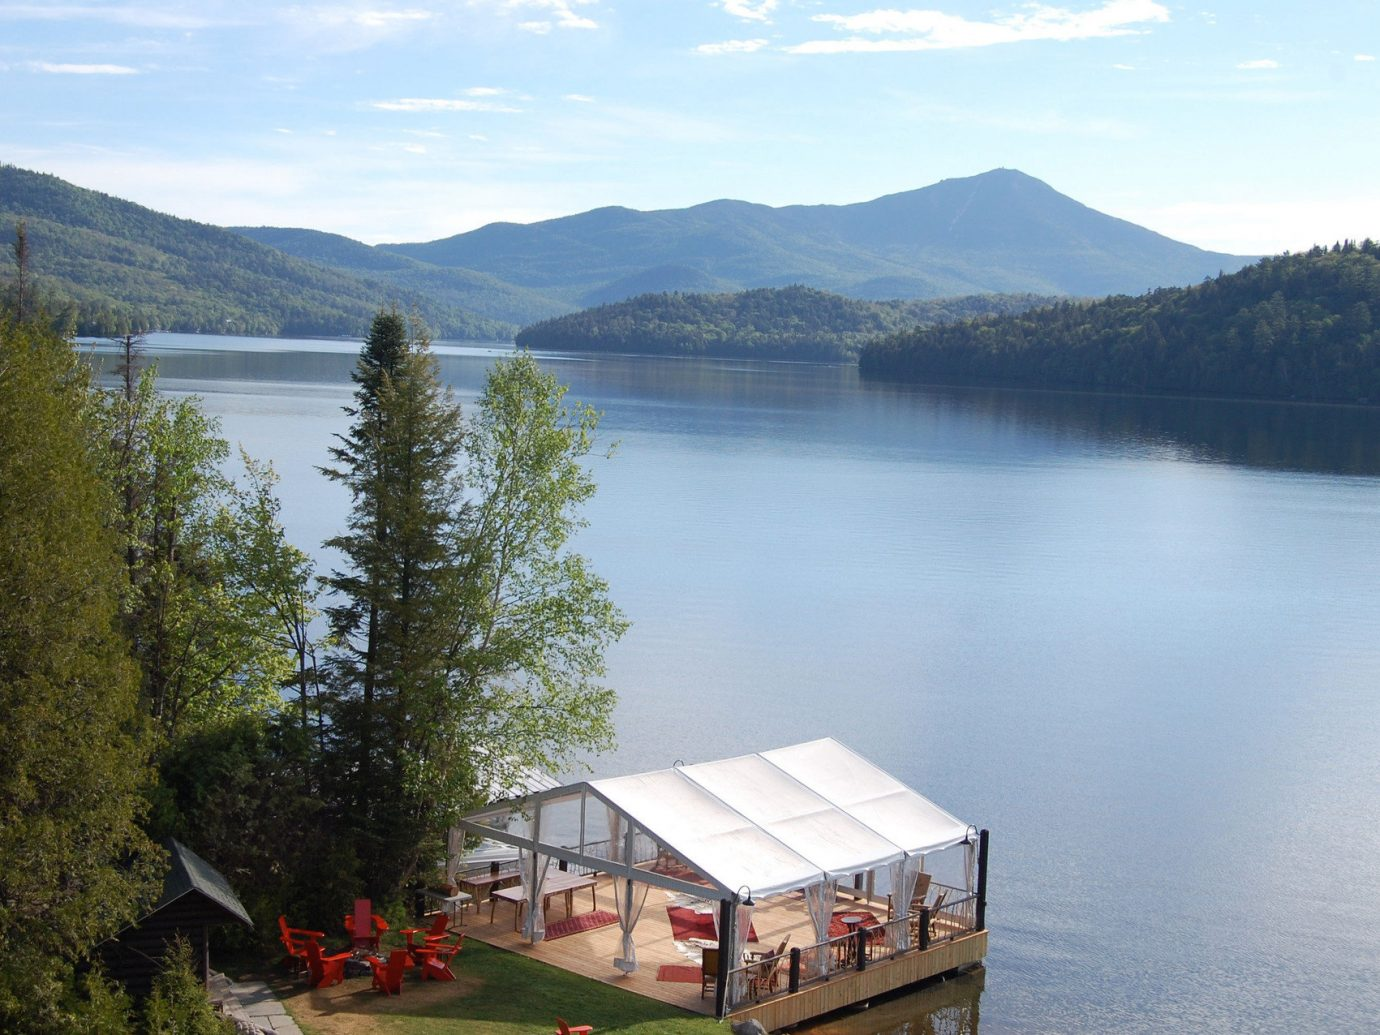 Hotels Lake Lakes + Rivers Lodge Mountains Nature Outdoors remote Scenic views trees view viewpoint mountain outdoor water tree sky body of water loch house fjord reservoir reflection mountain range background surrounded traveling hillside shore